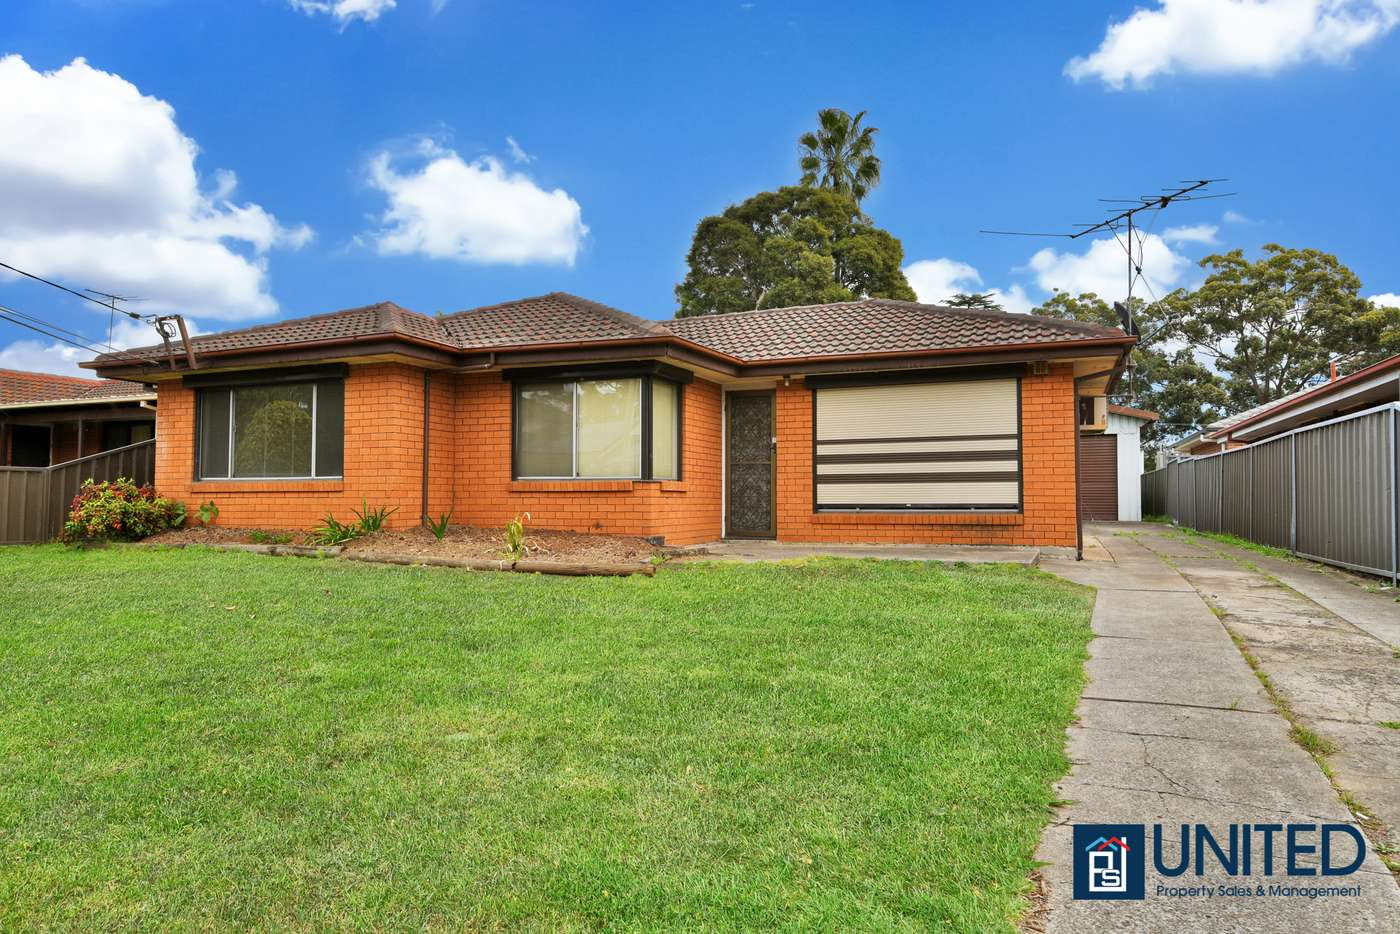 Main view of Homely house listing, 8 Meig Pl, Marayong NSW 2148